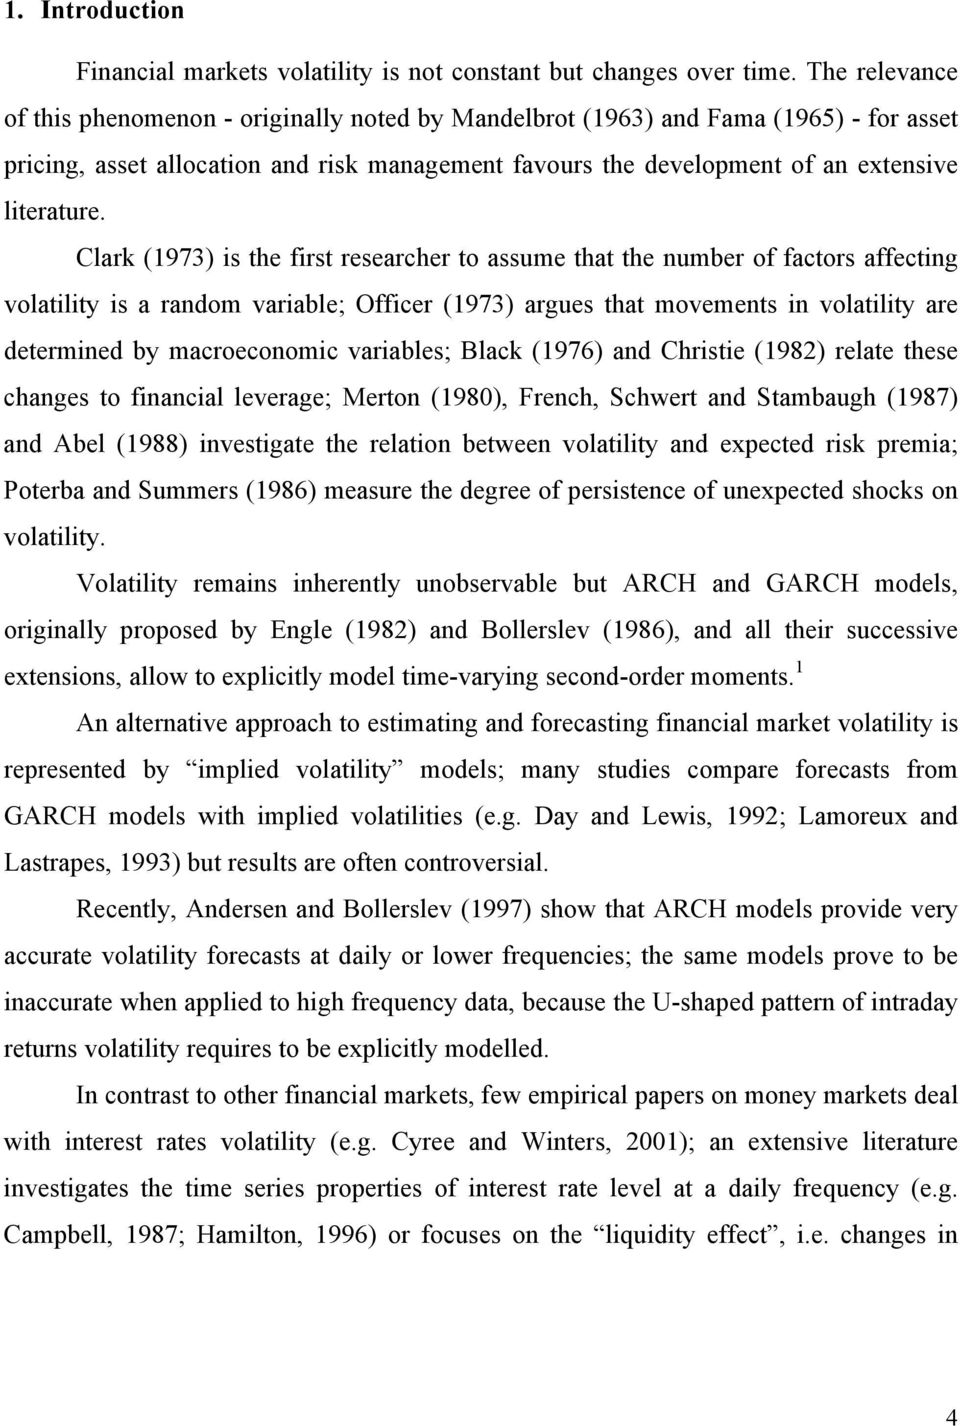 Clark (1973) is the first researcher to assume that the number of factors affecting volatility is a random variable; Officer (1973) argues that movements in volatility are determined by macroeconomic